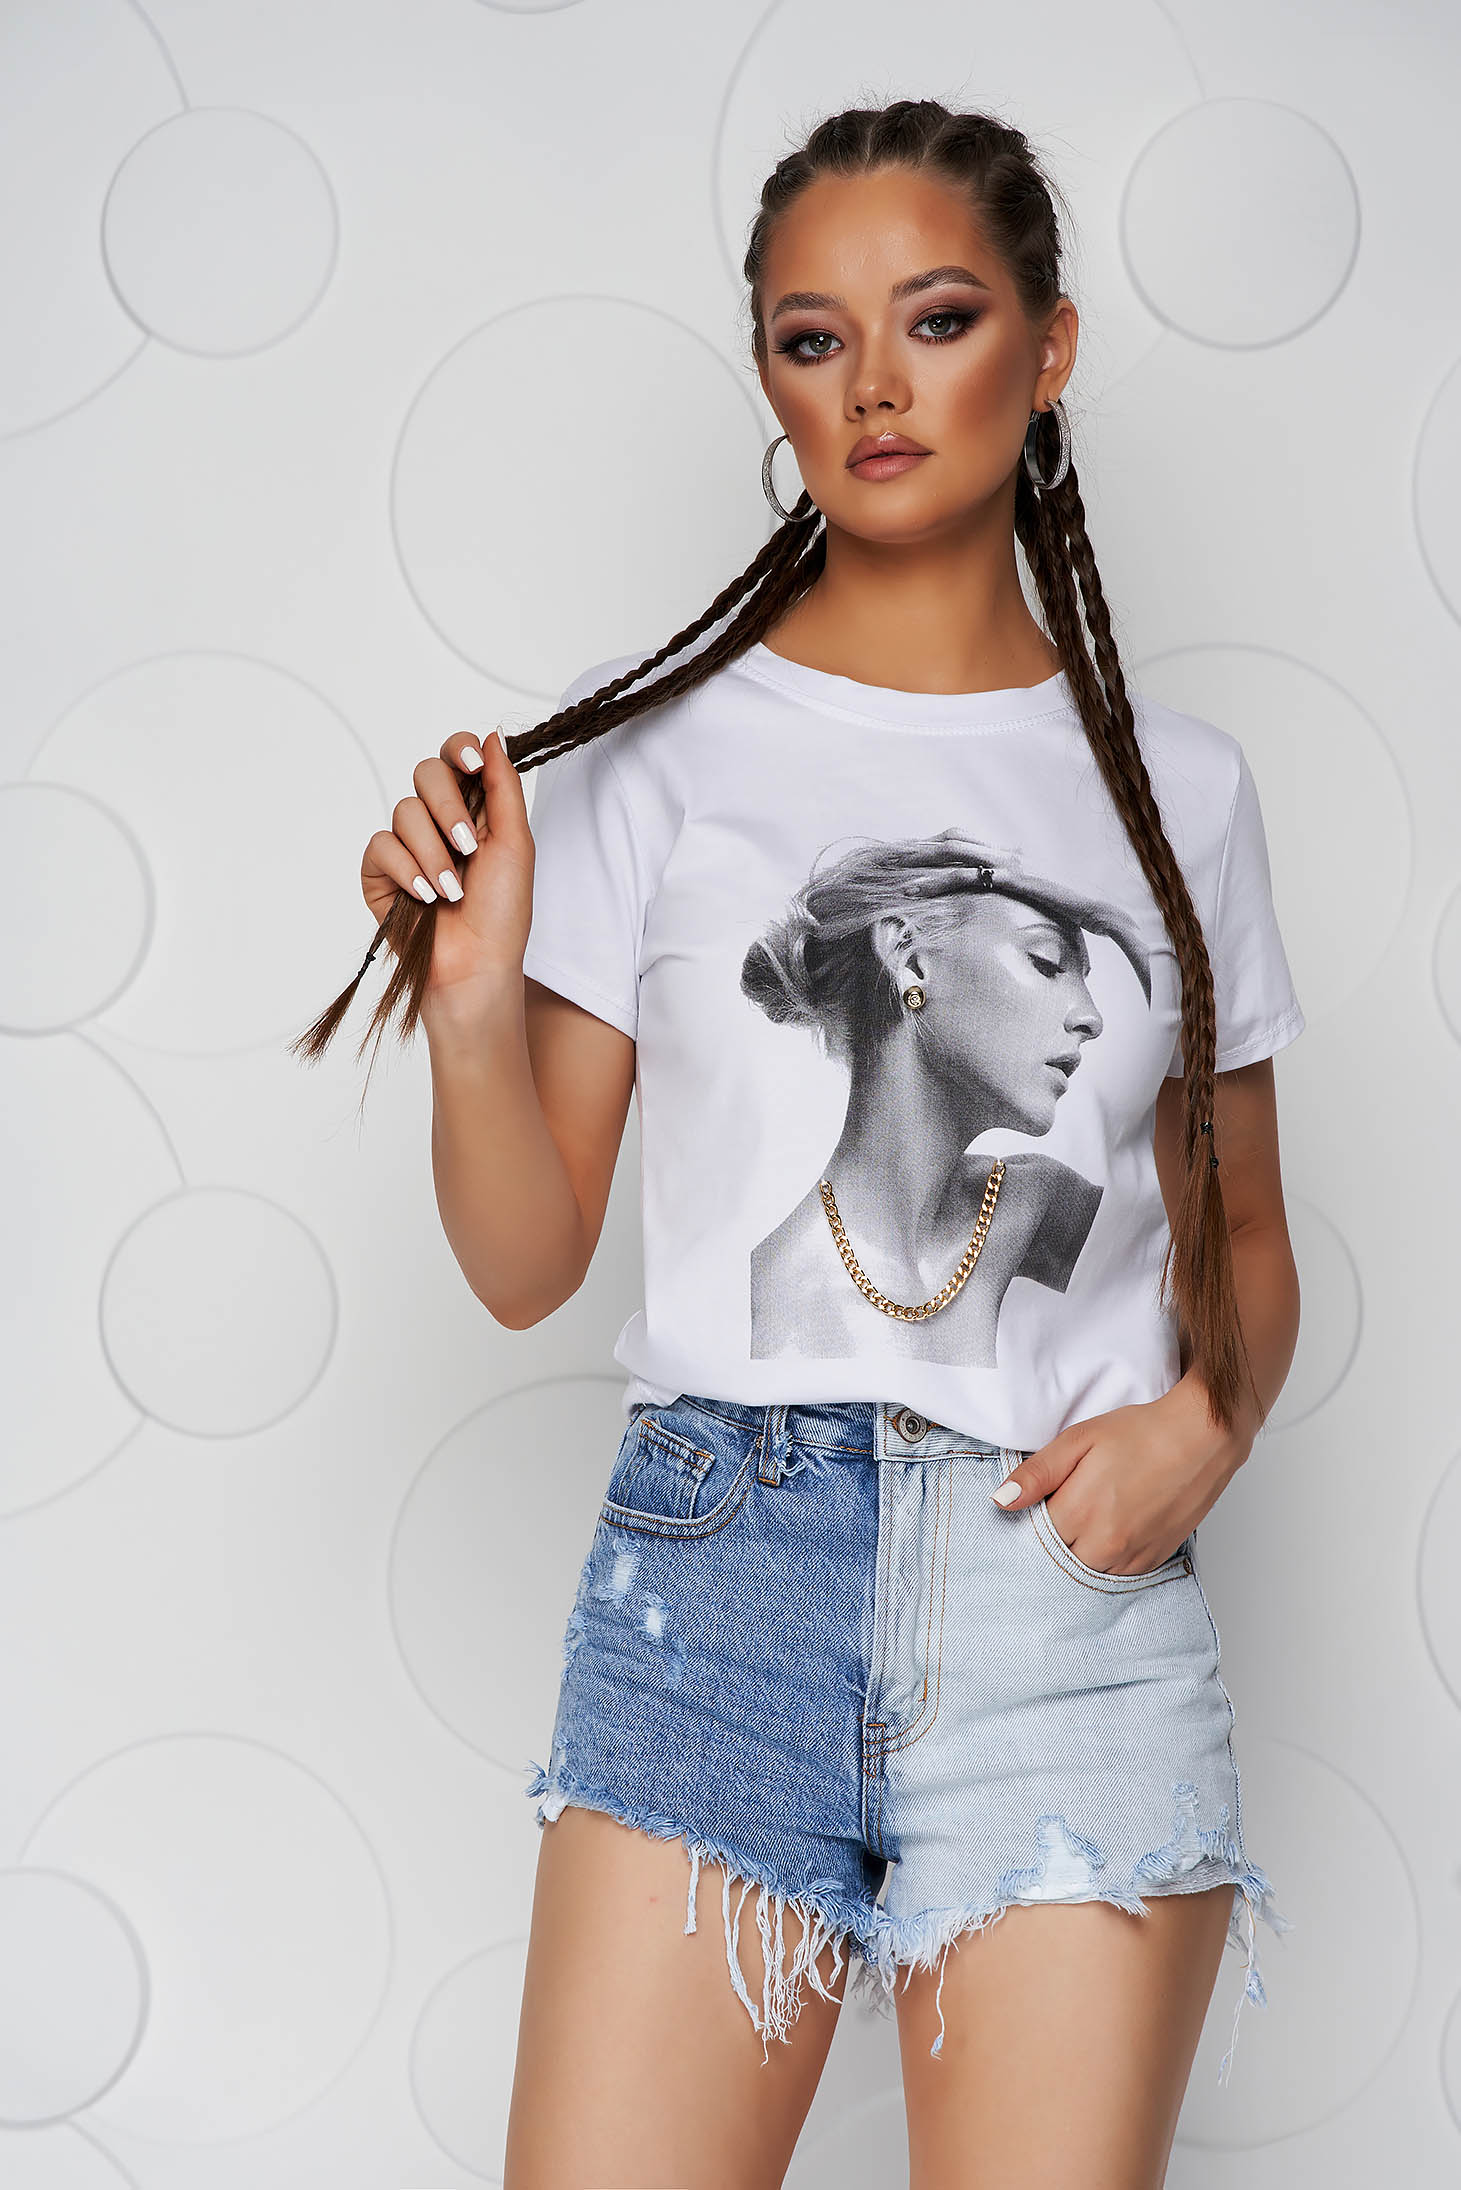 White t-shirt cotton loose fit with rounded cleavage accessorized with chain